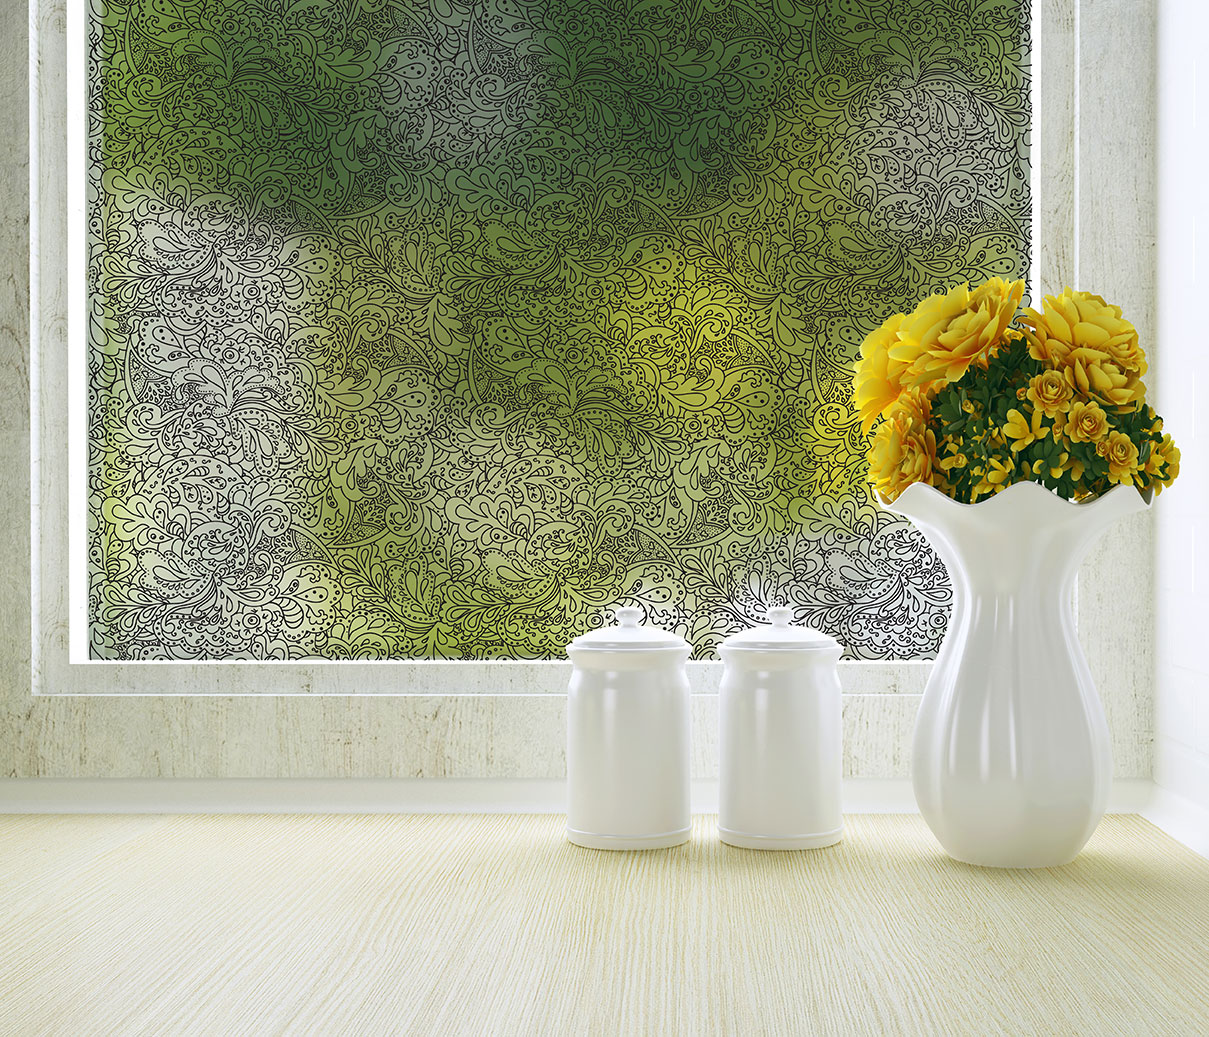 Adhesive Window Film Mirror Reflective Commercial Window